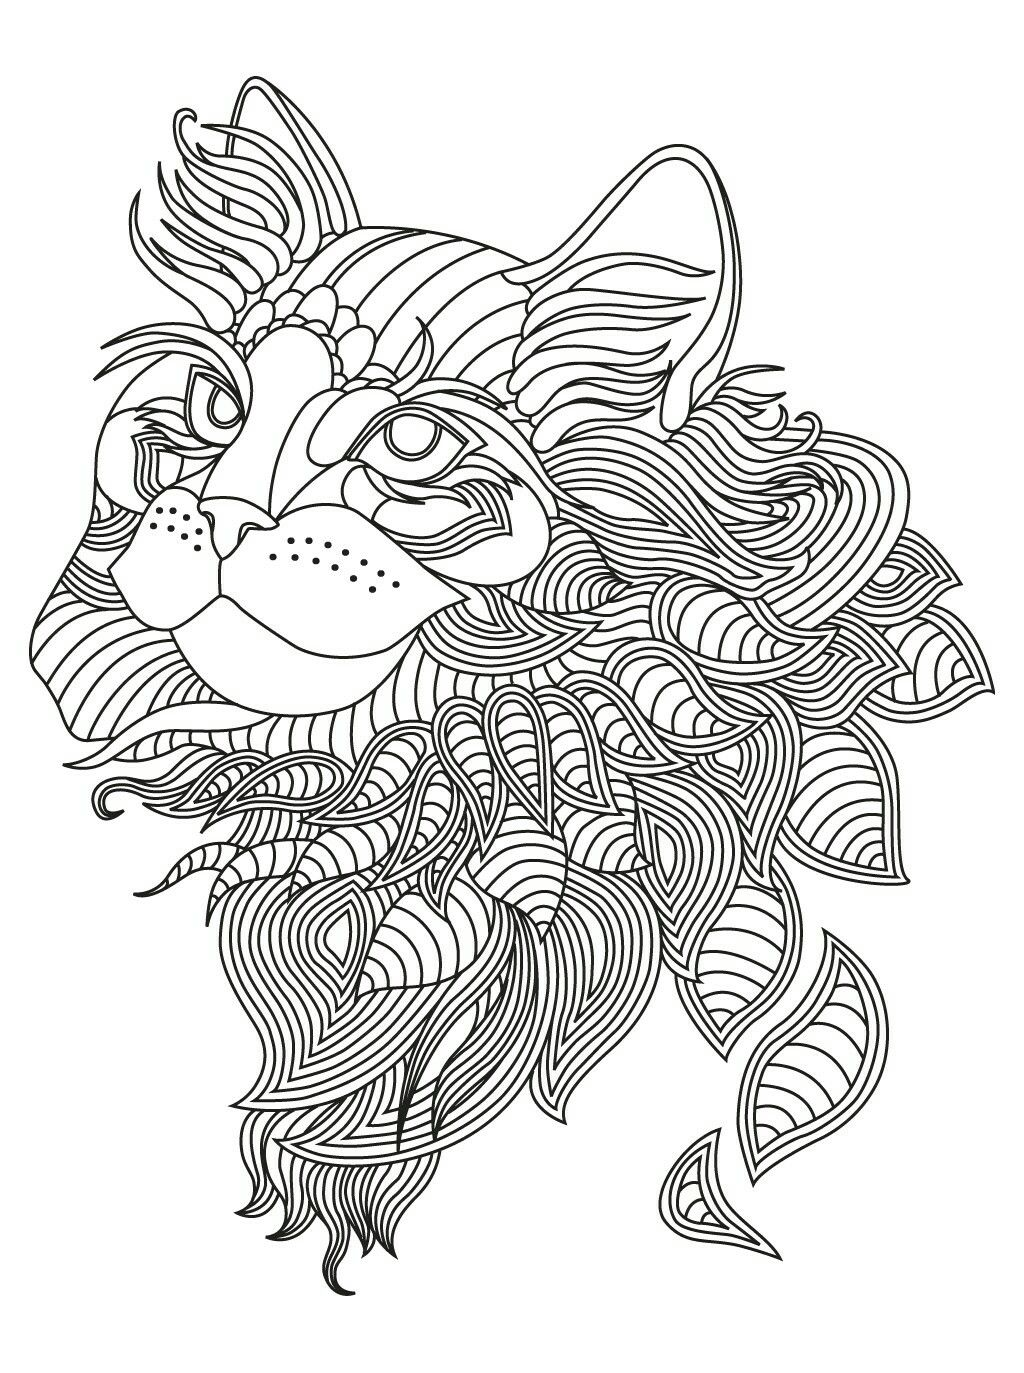 Cat tangle coloring page | Coloring ideas | Pinterest | Molde y Animales